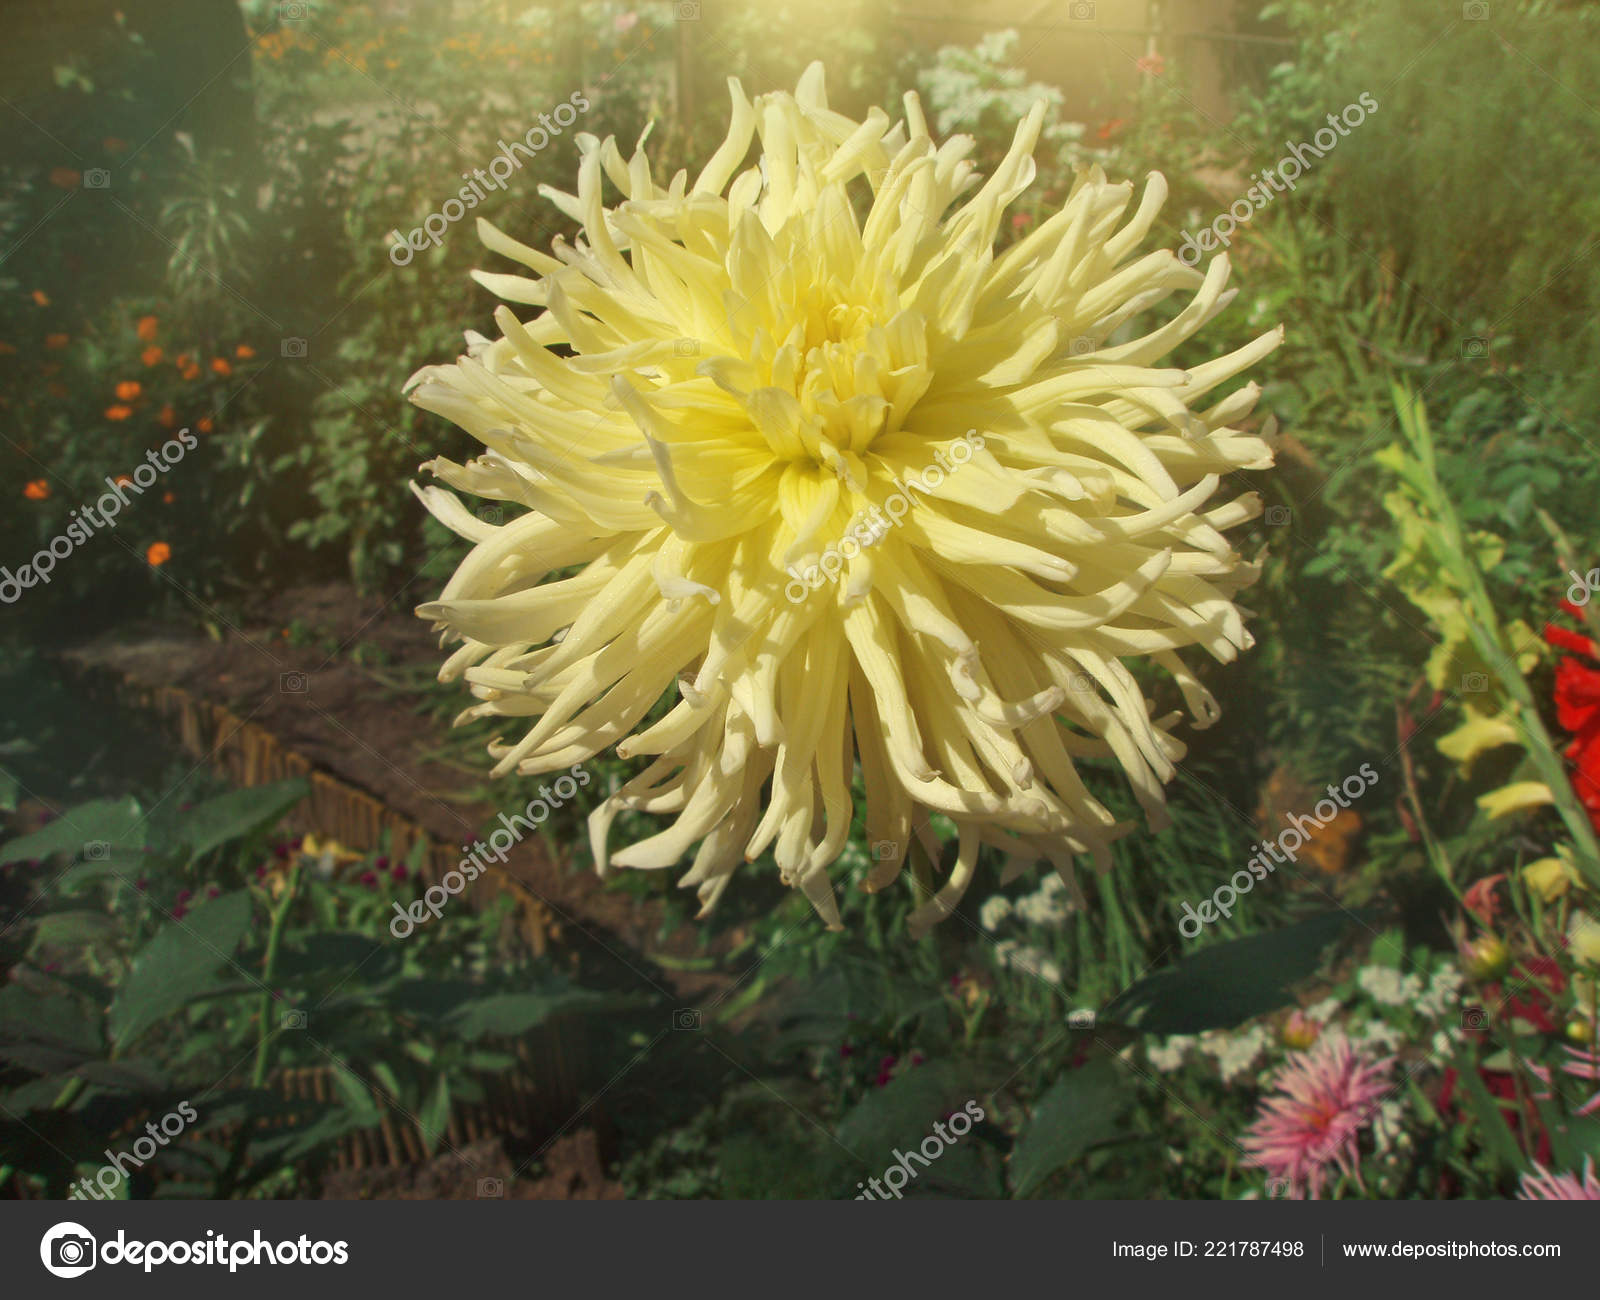 Dahlia Flower Yellow Happiness Tuberous Rooted Perennial Dahlia